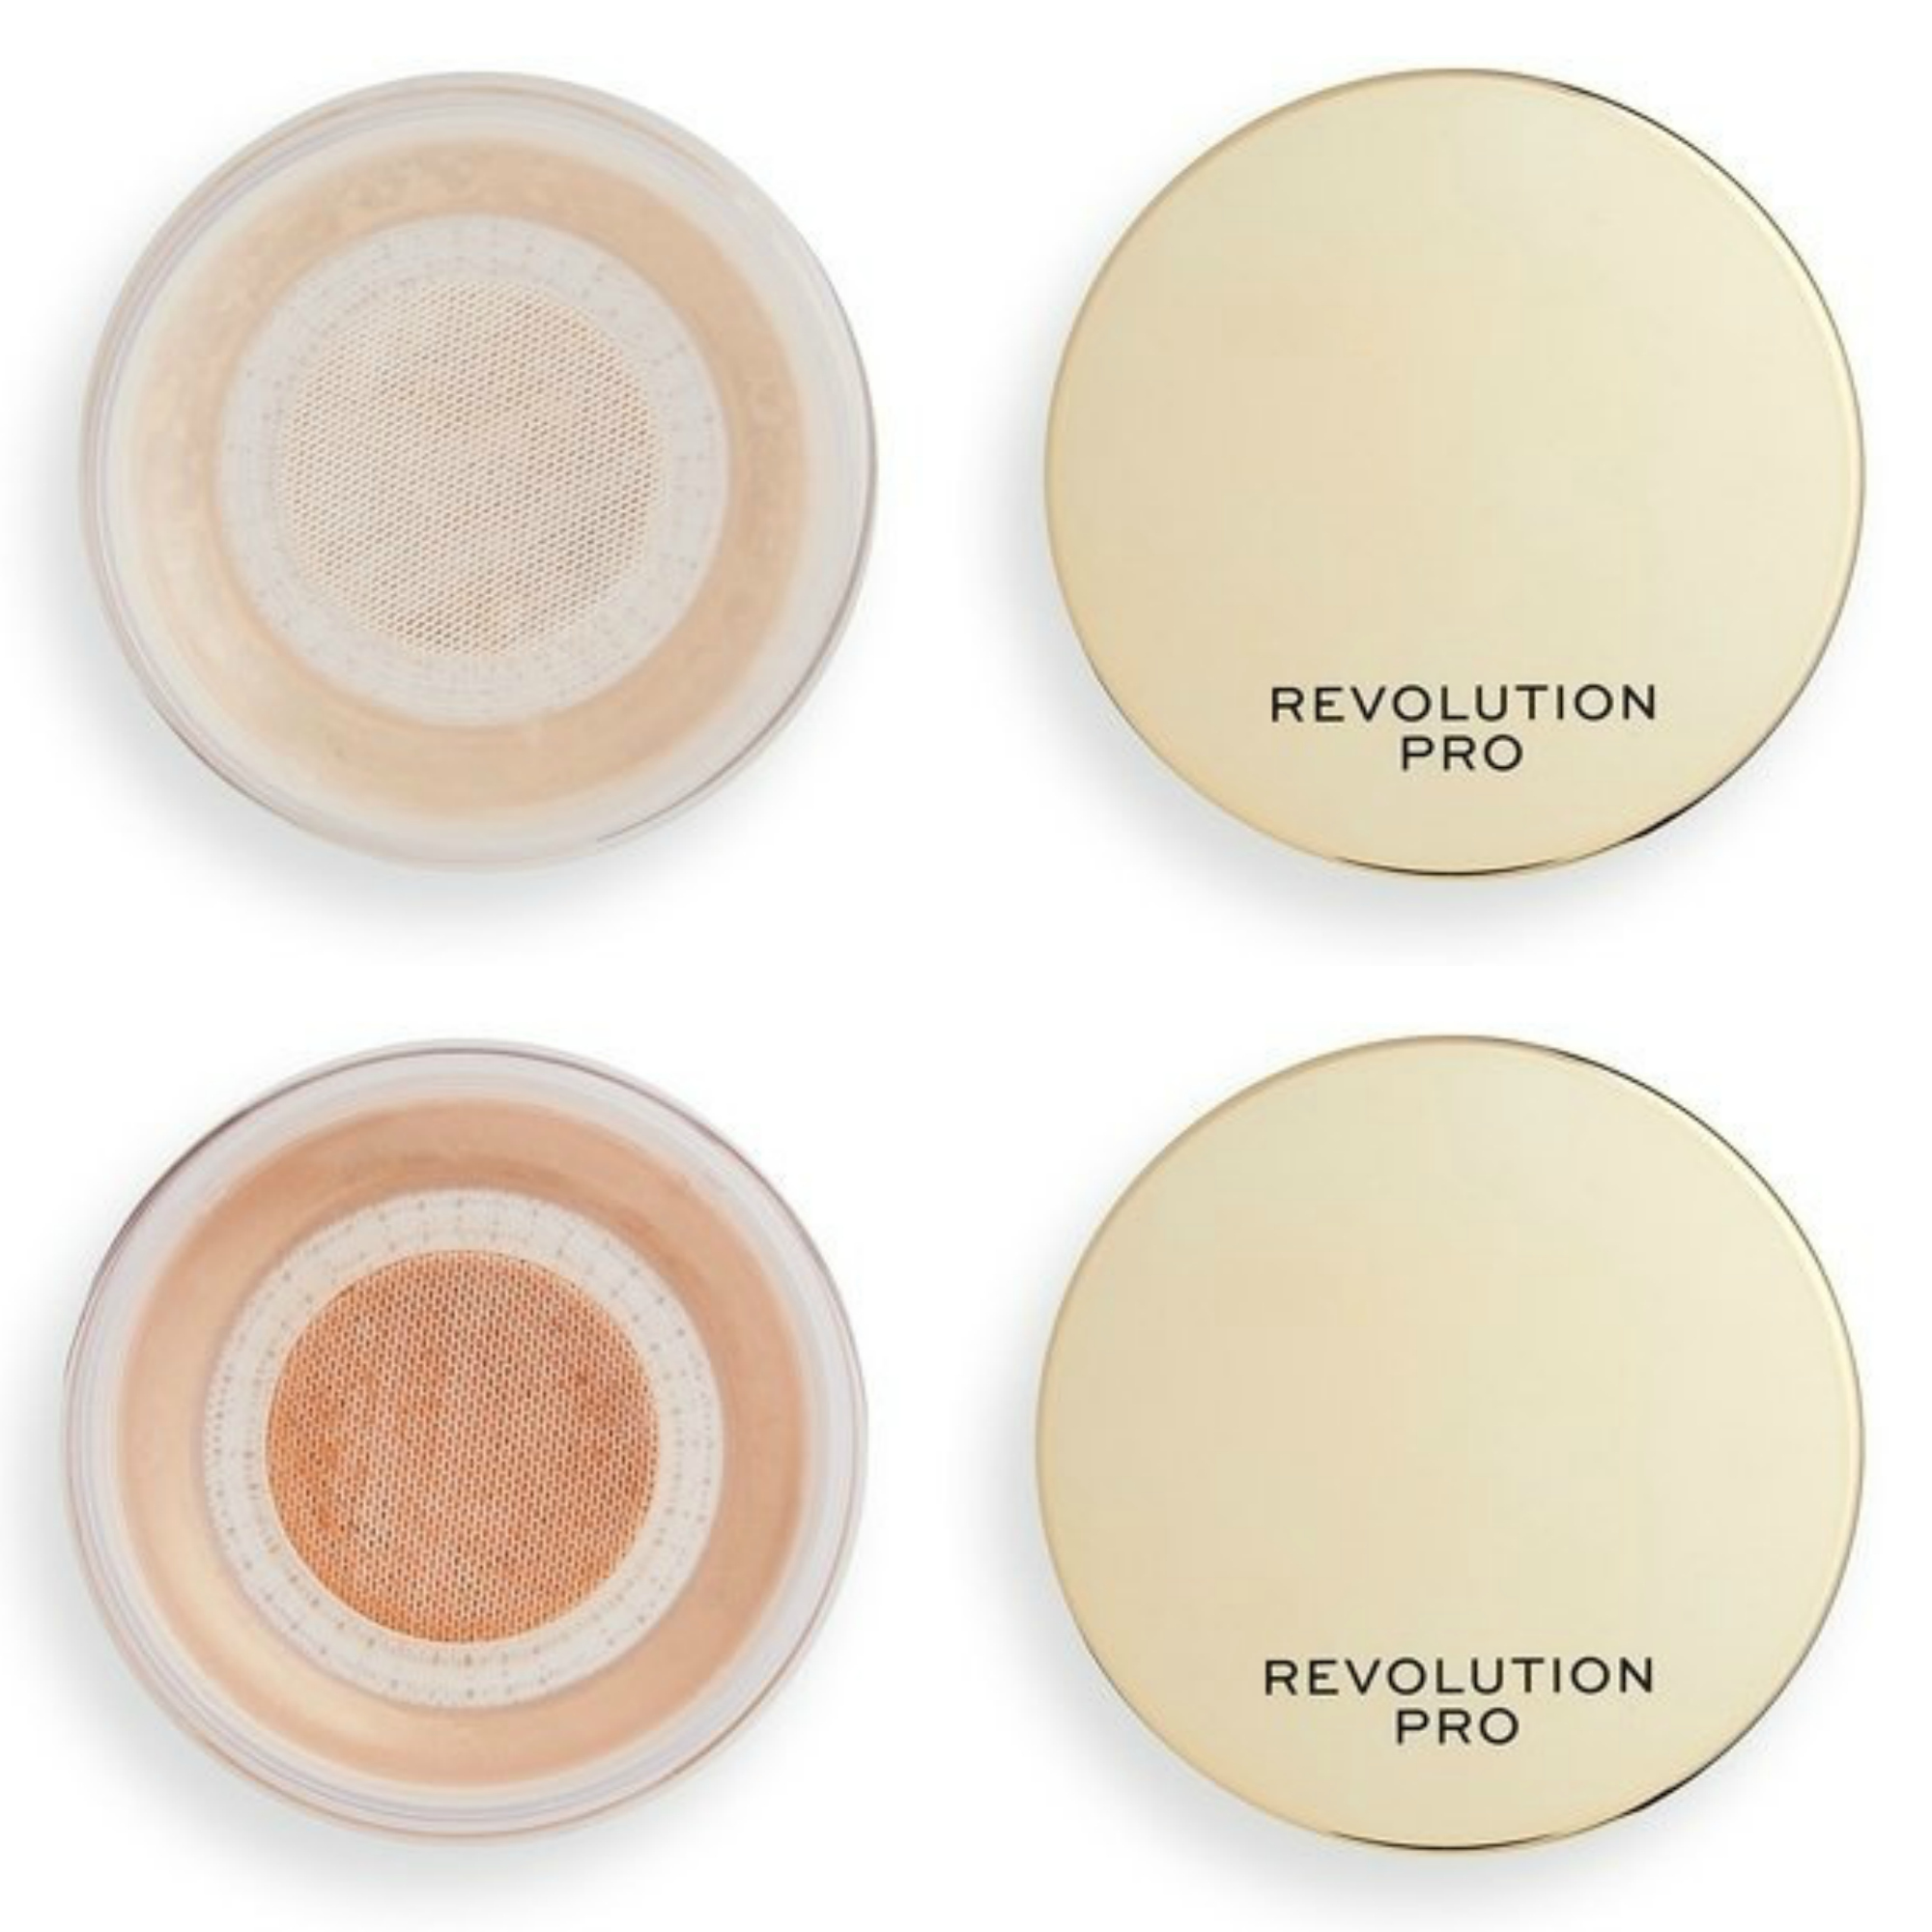 Revolution PRO Goddess Glow Finishing Powder